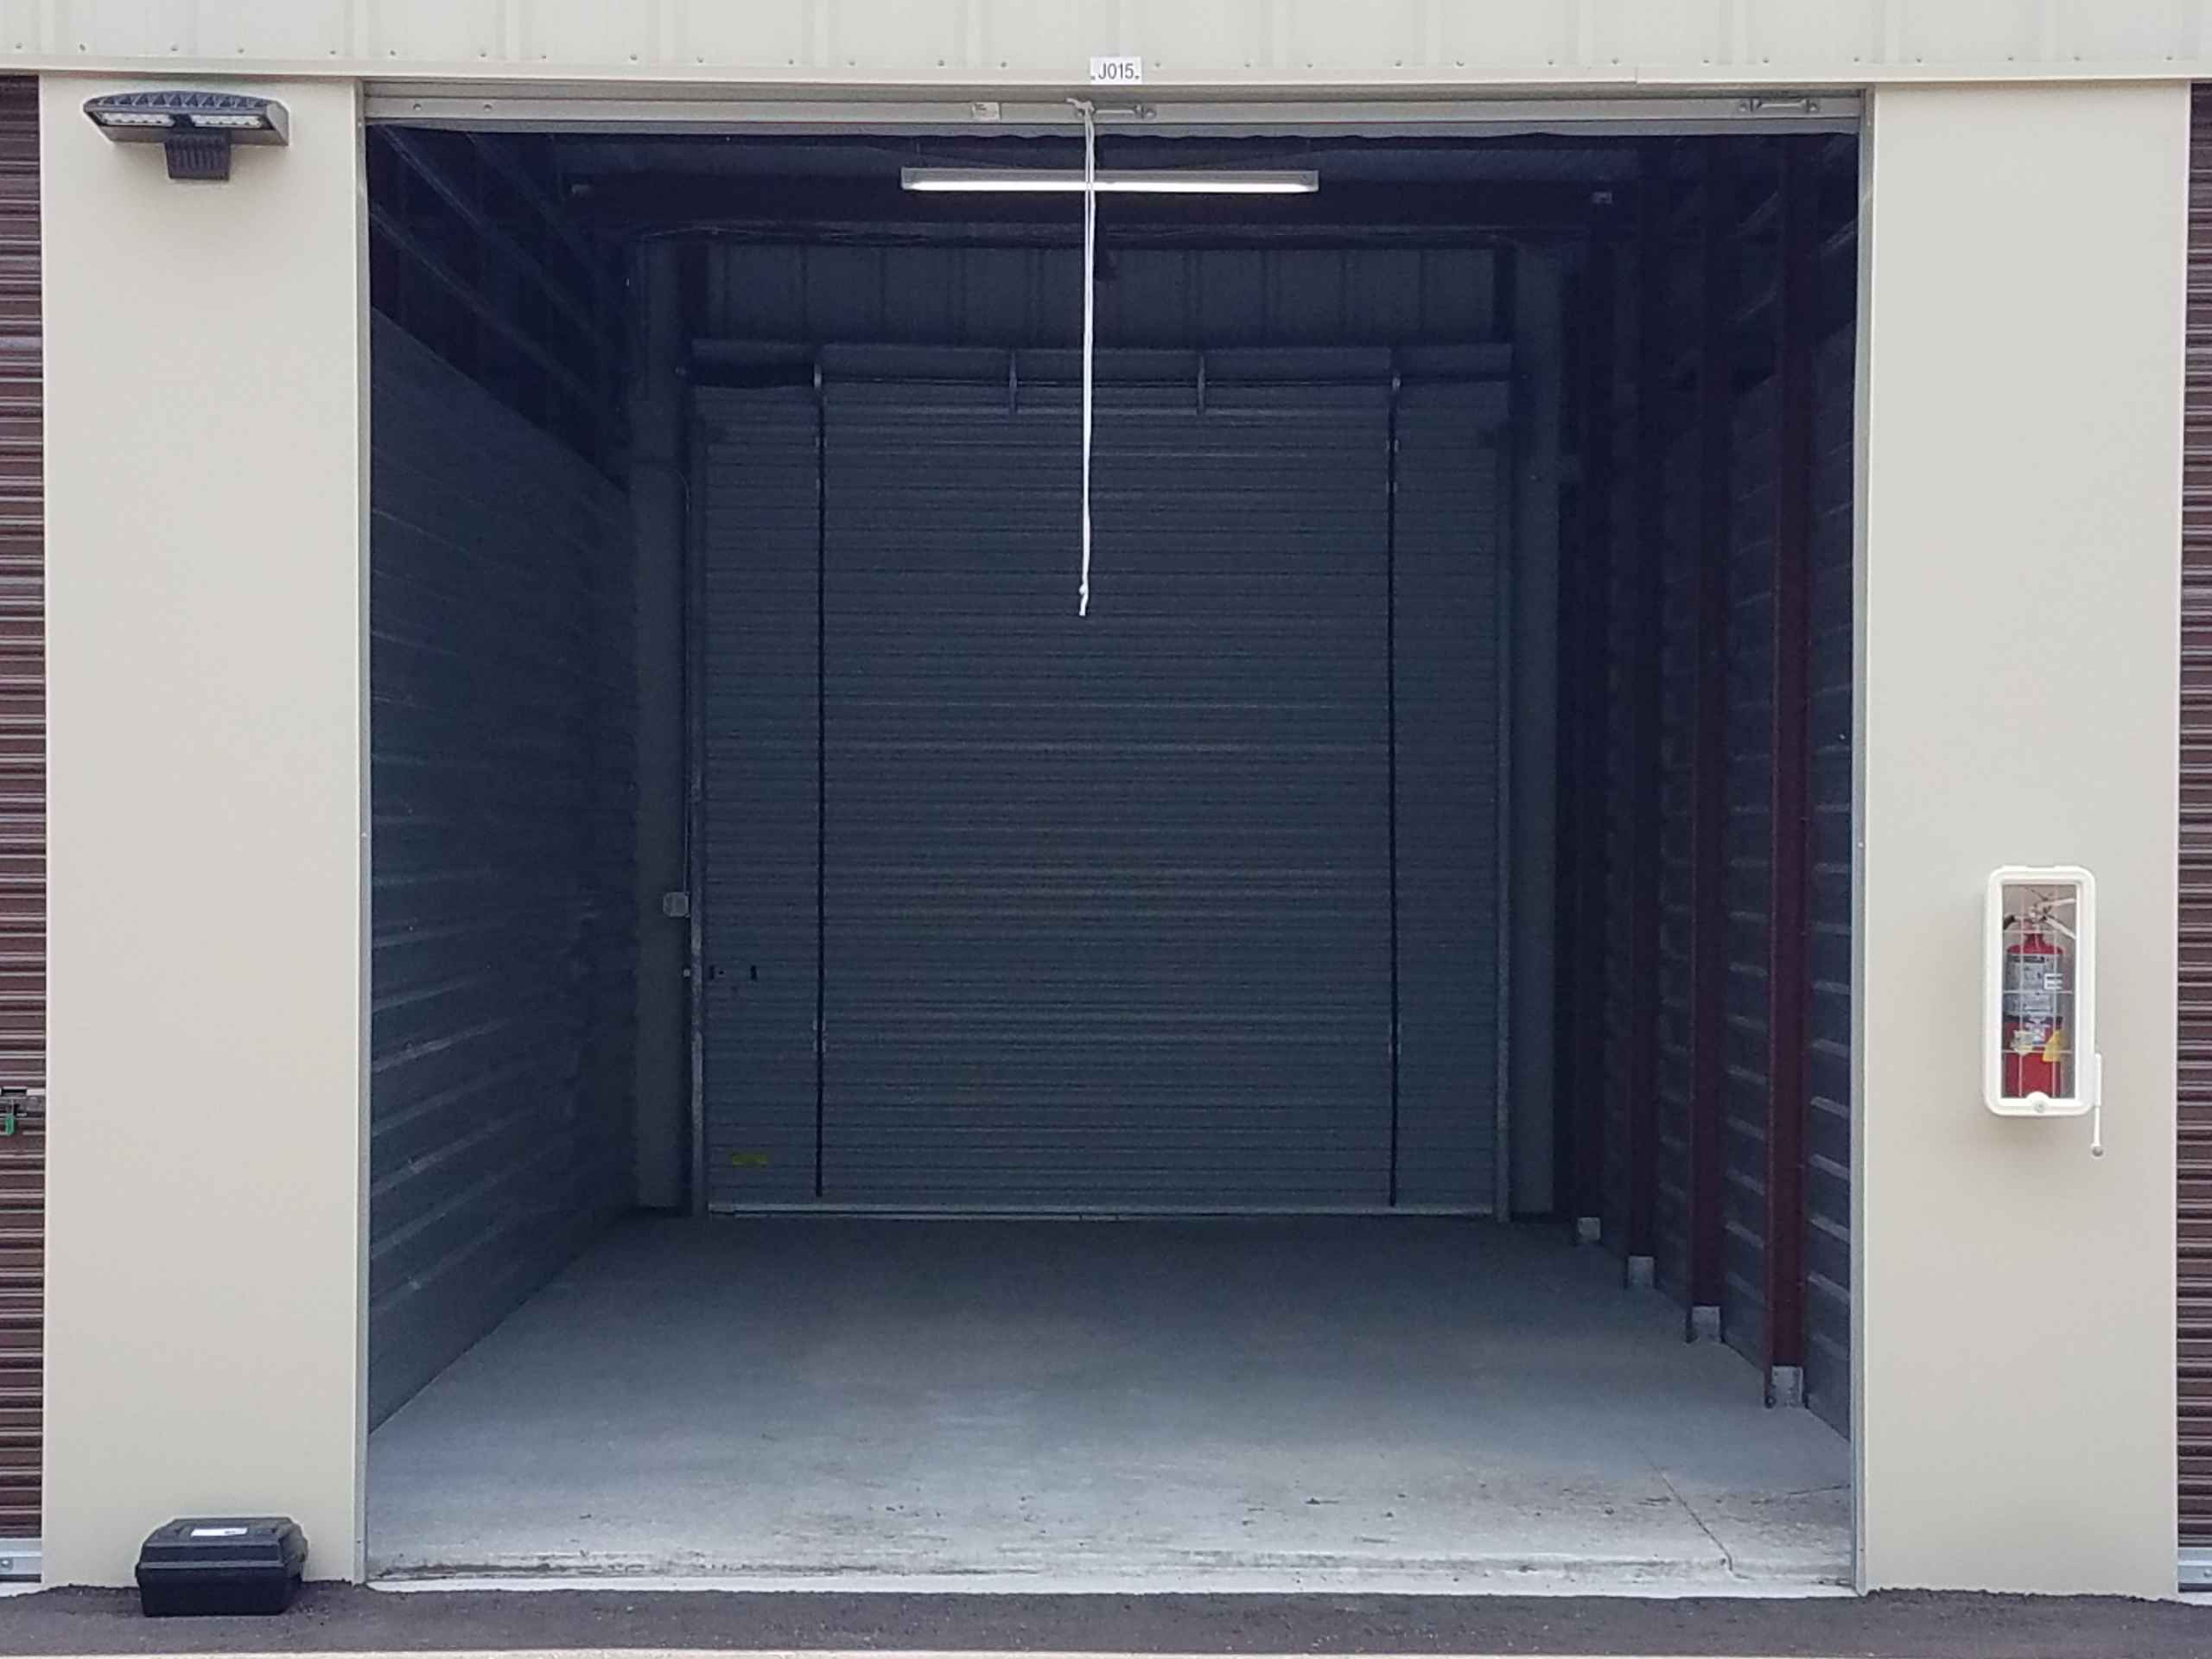 Self Storage unit with double door access front door open back door closed